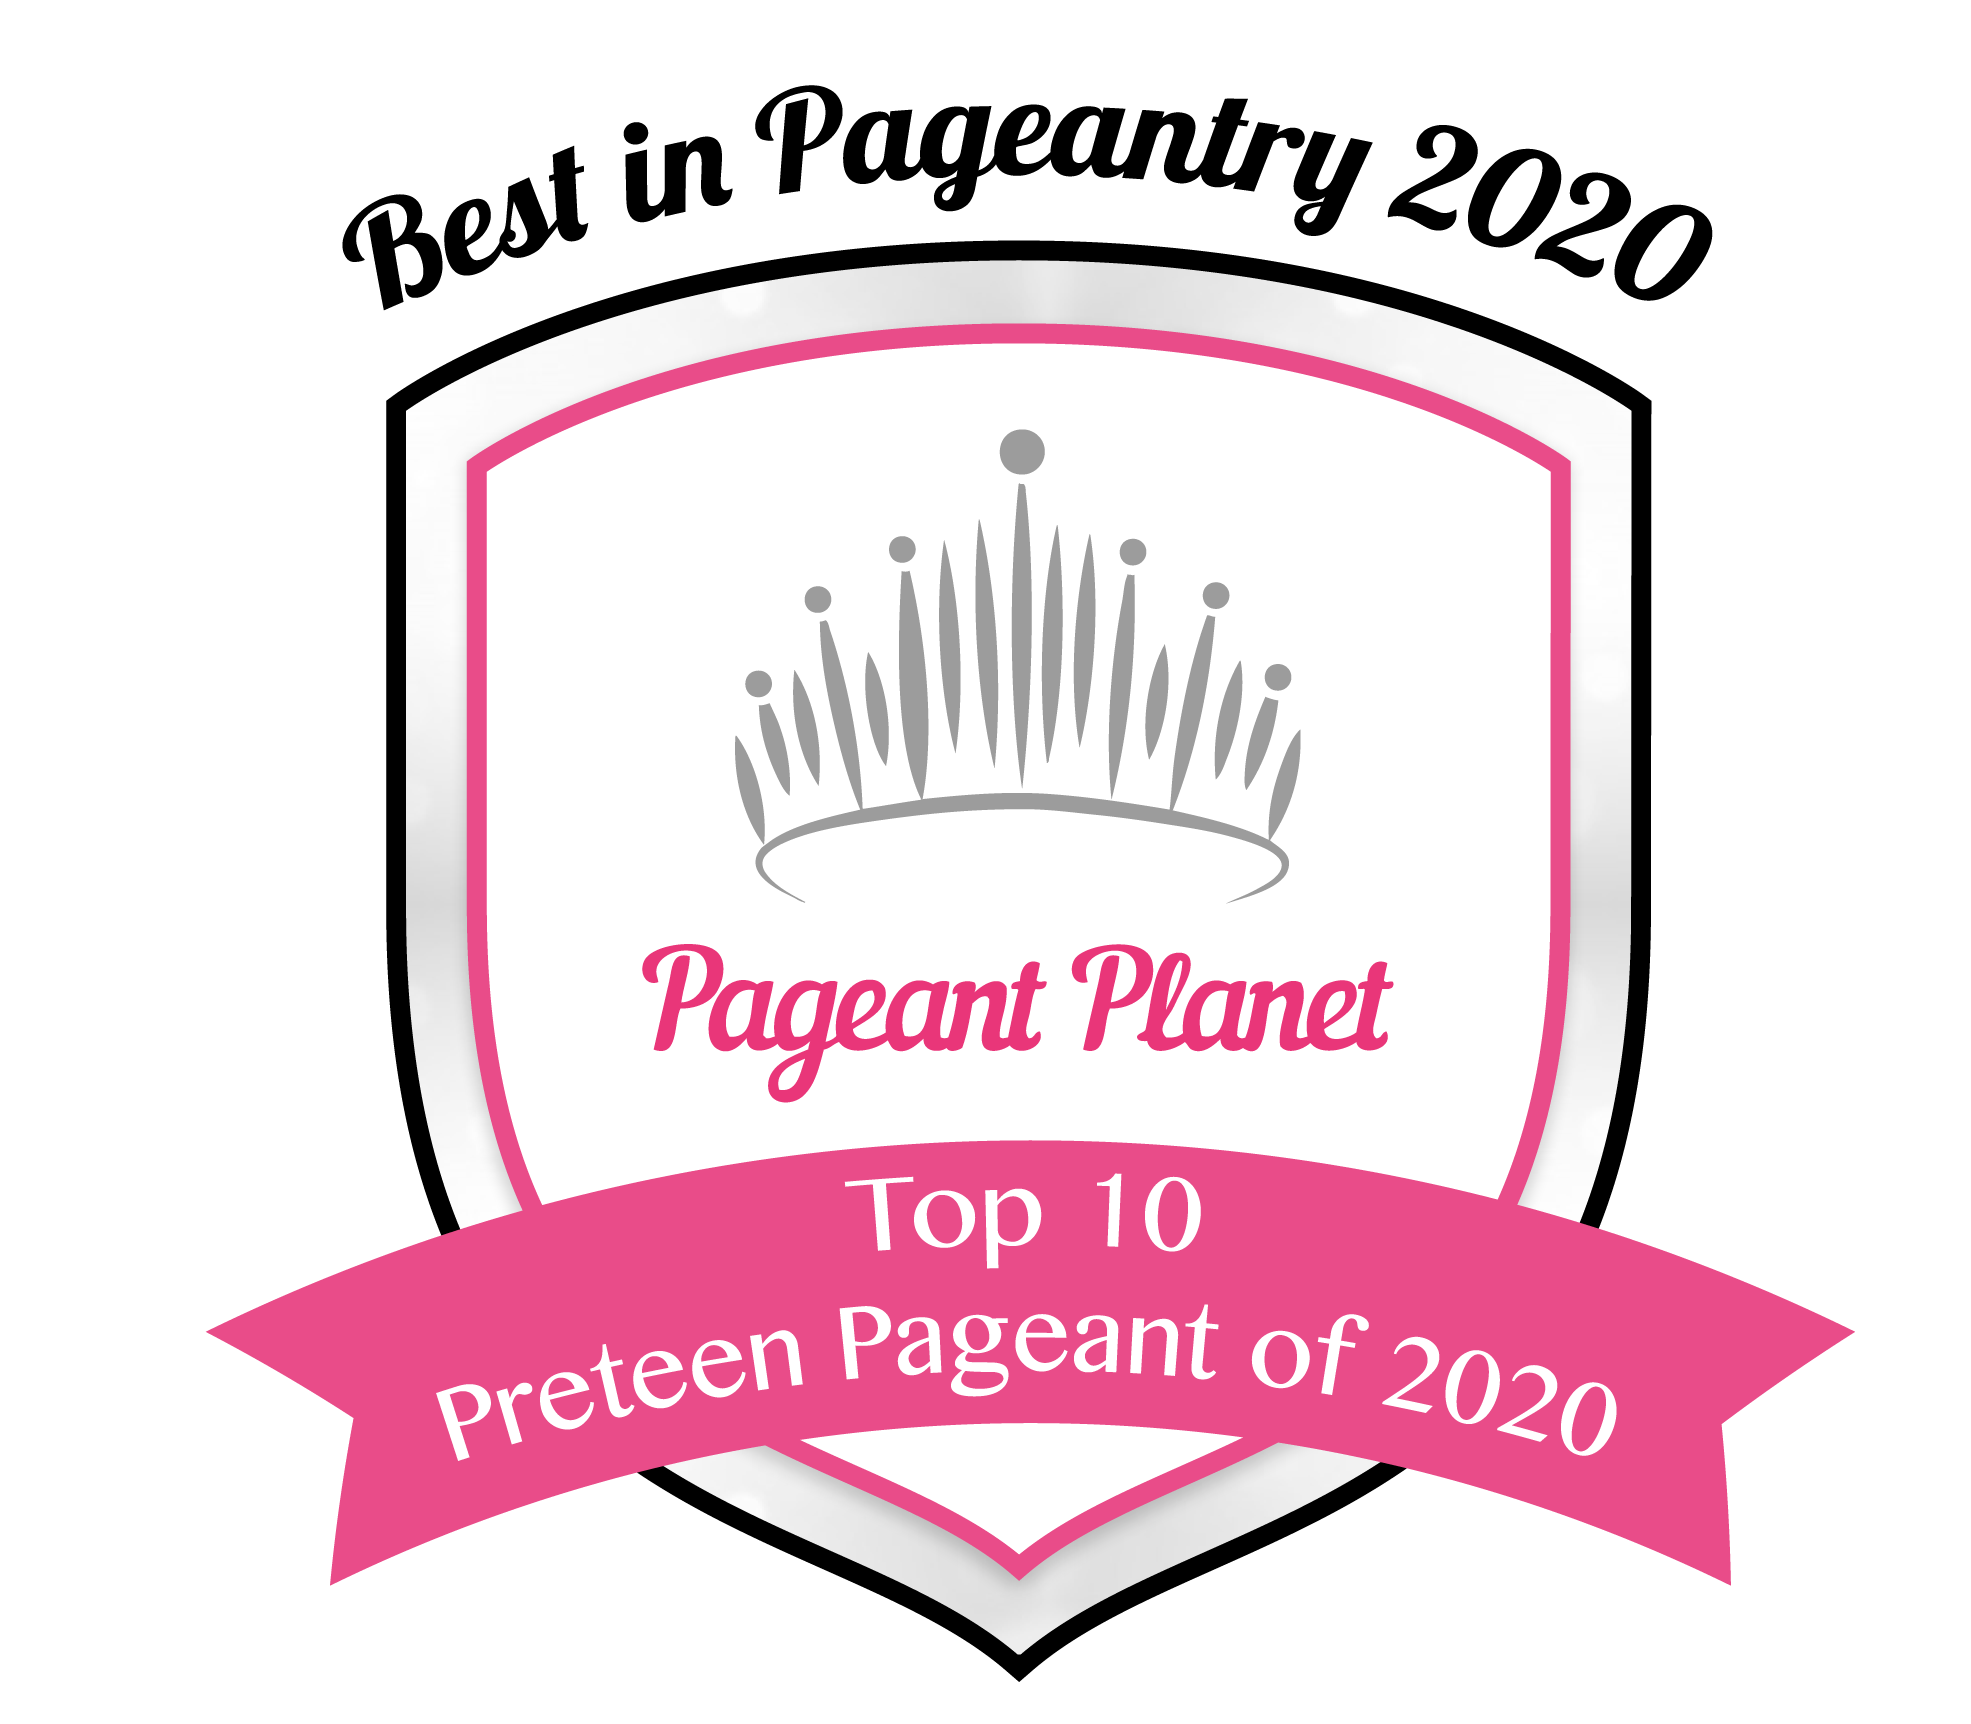 Top 10 Preteen Pageant of 2020